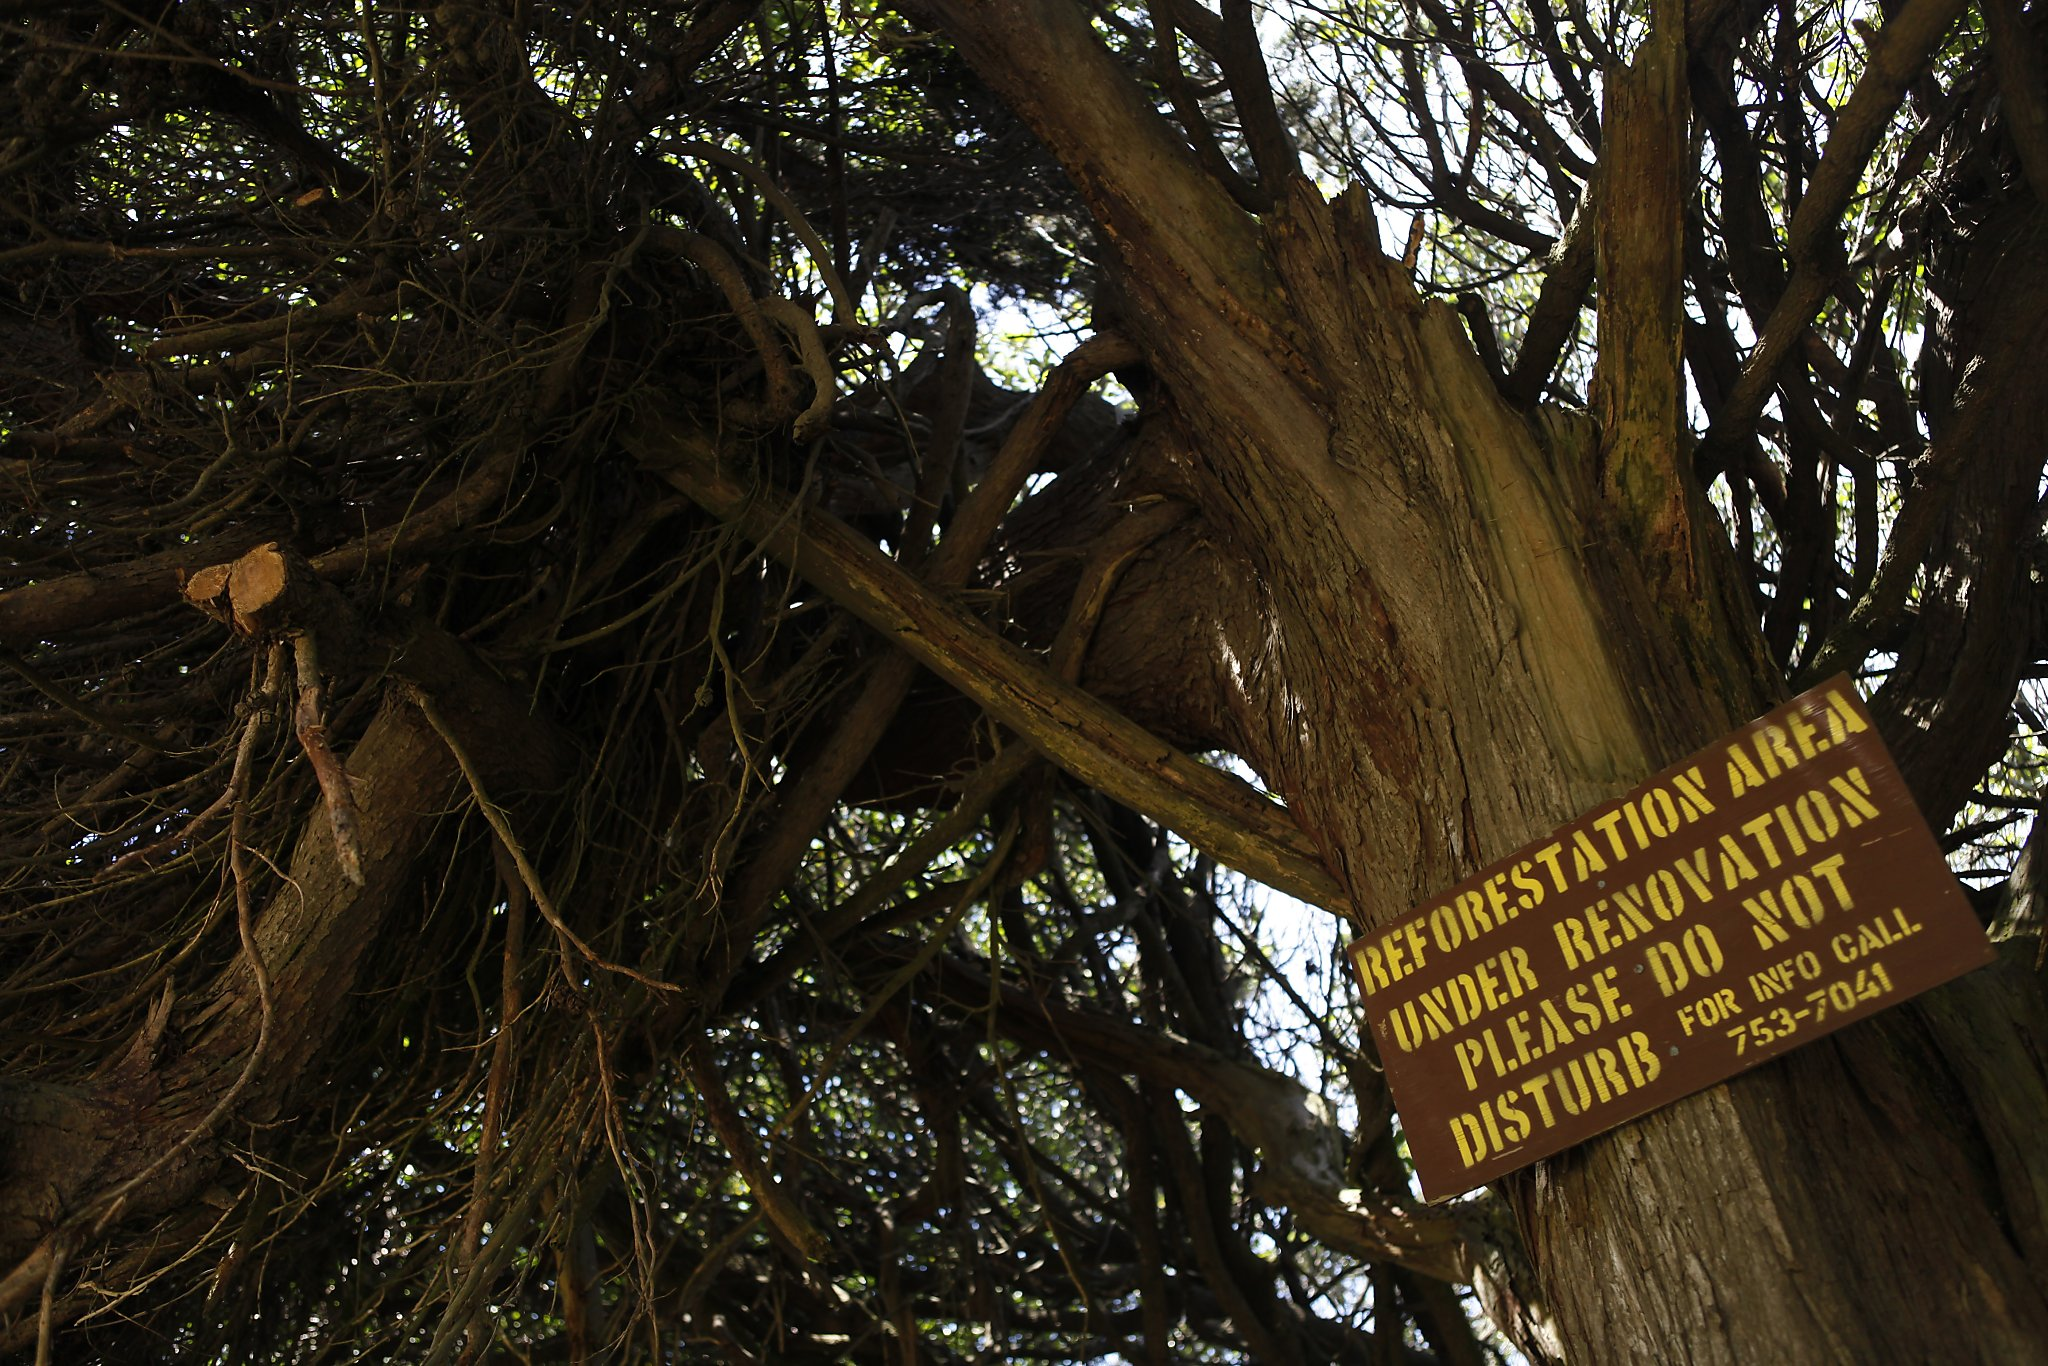 Vandals tearing up trees in Golden Gate Park - SFGate